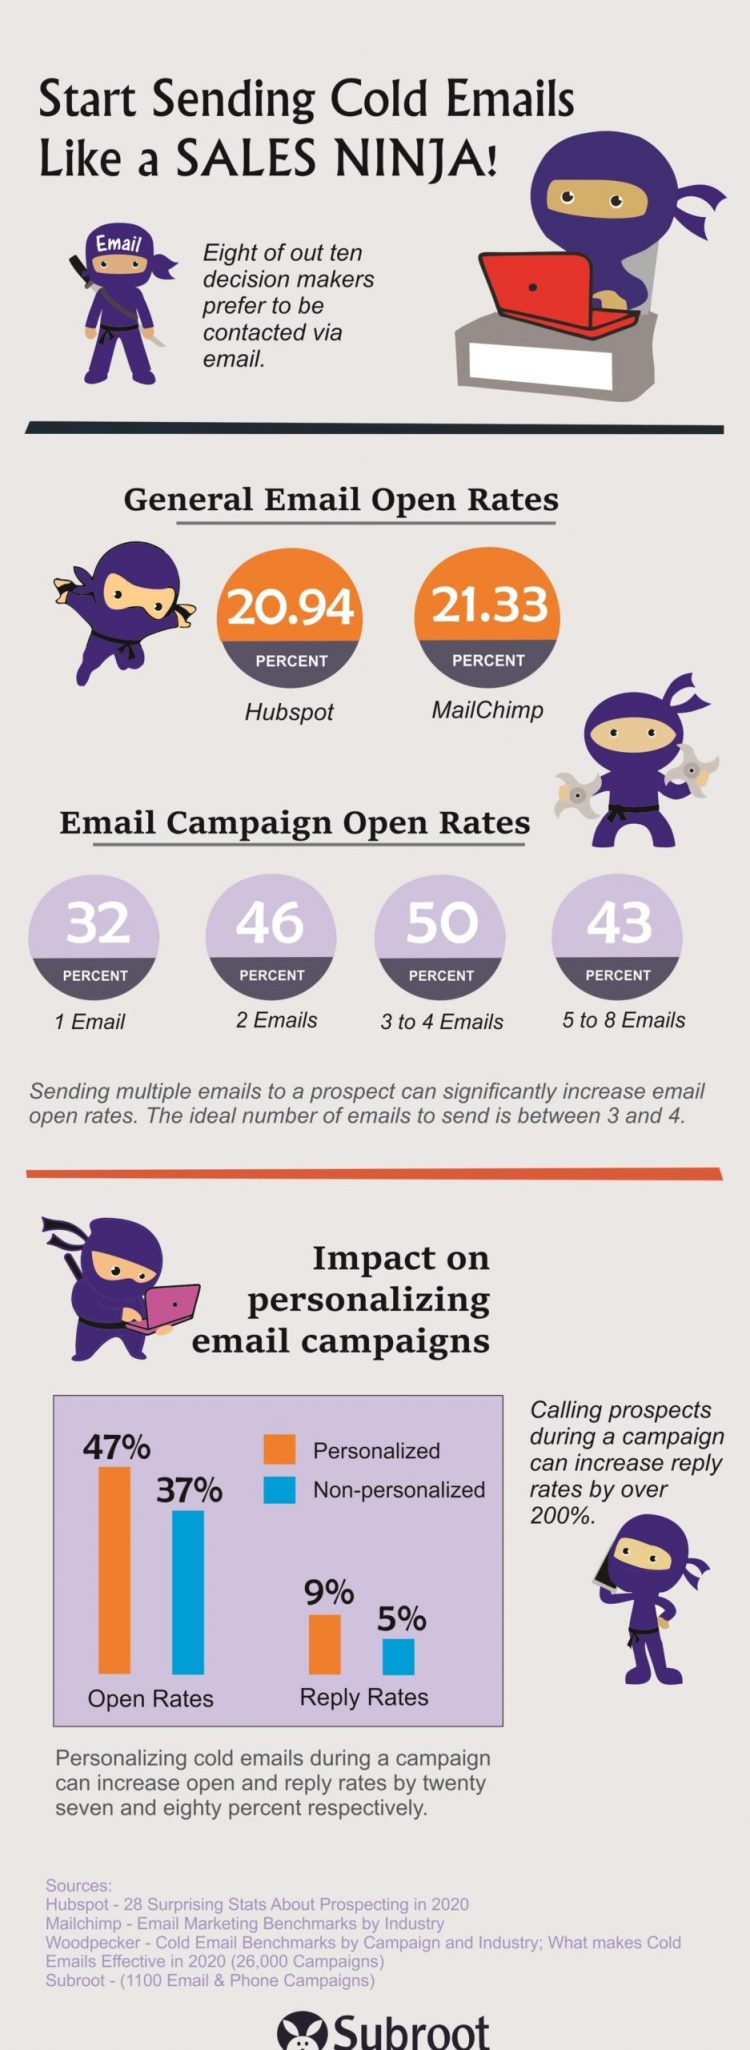 Subroot's infographic Sending Cold Emails Like a Sales Ninja